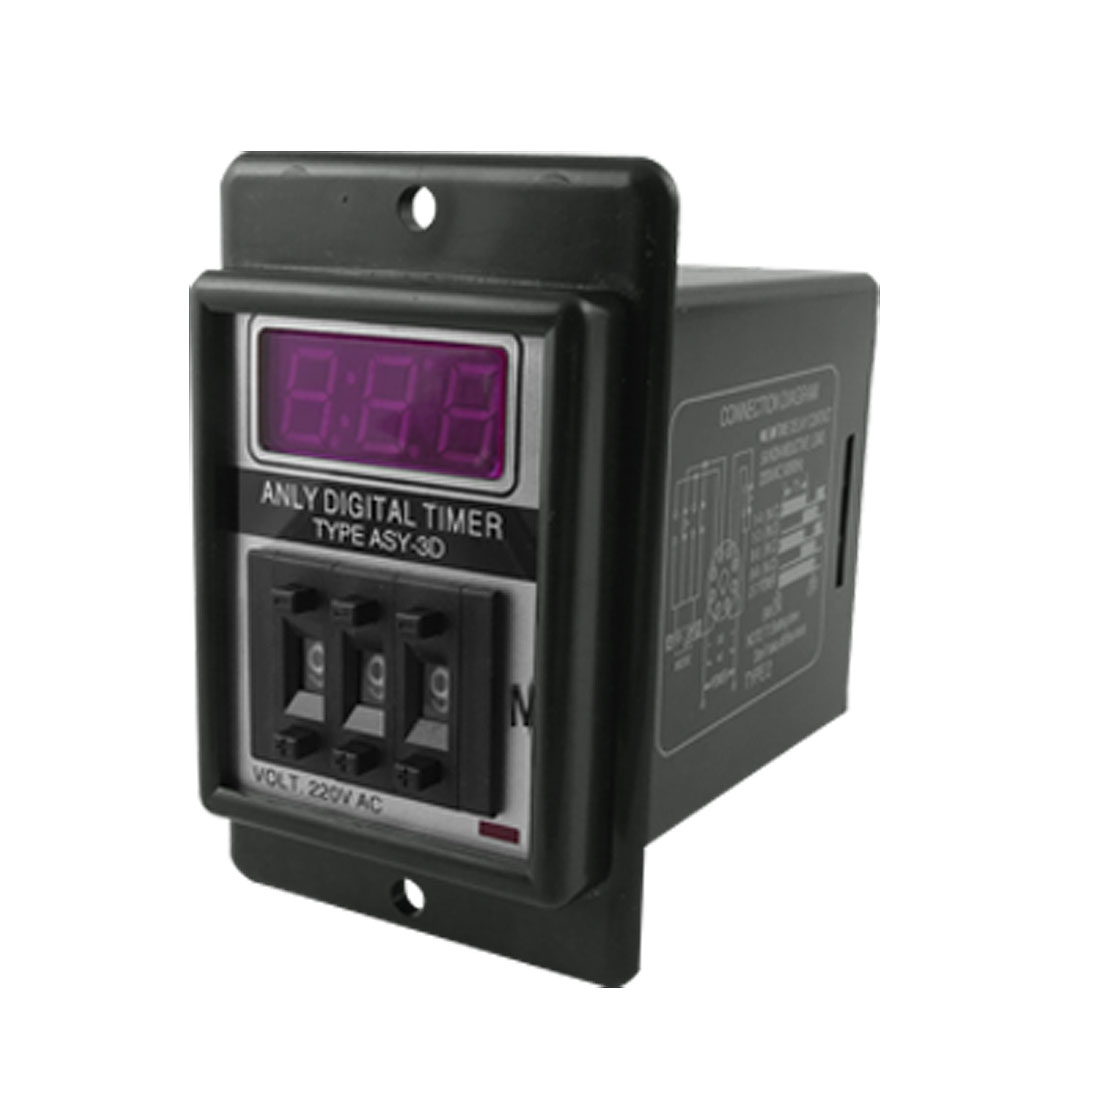 AC 220V Panel Mounting 0-999 Minute Range 3 Digits Digital Time Relay